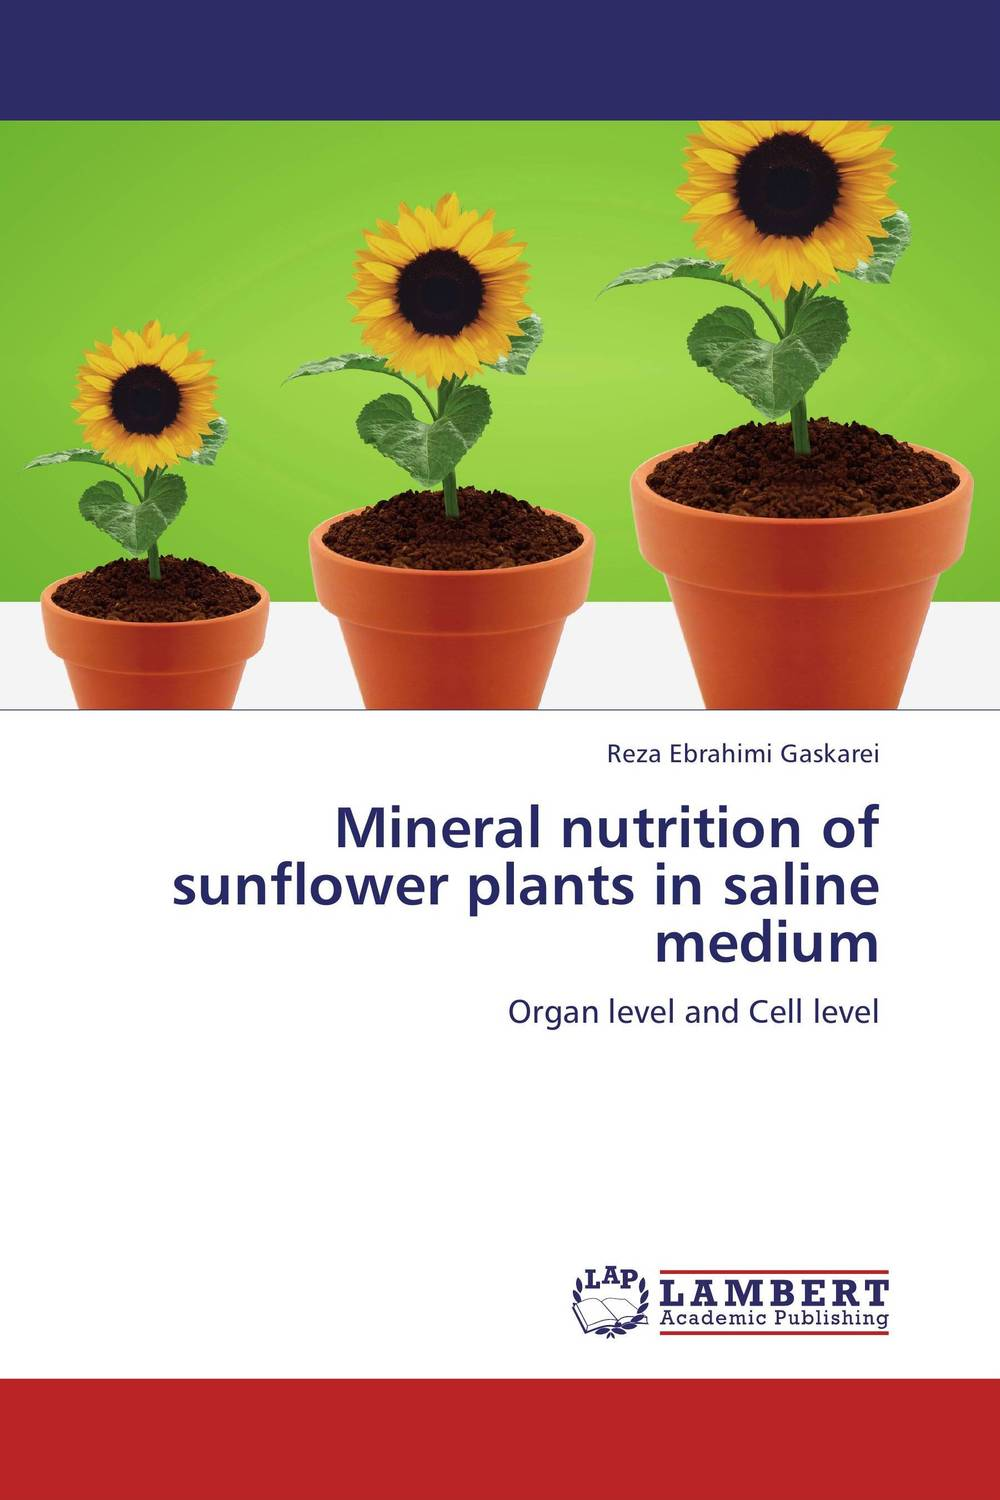 Mineral  nutrition of sunflower plants in saline medium the role of dna damage and repair in cell aging 4